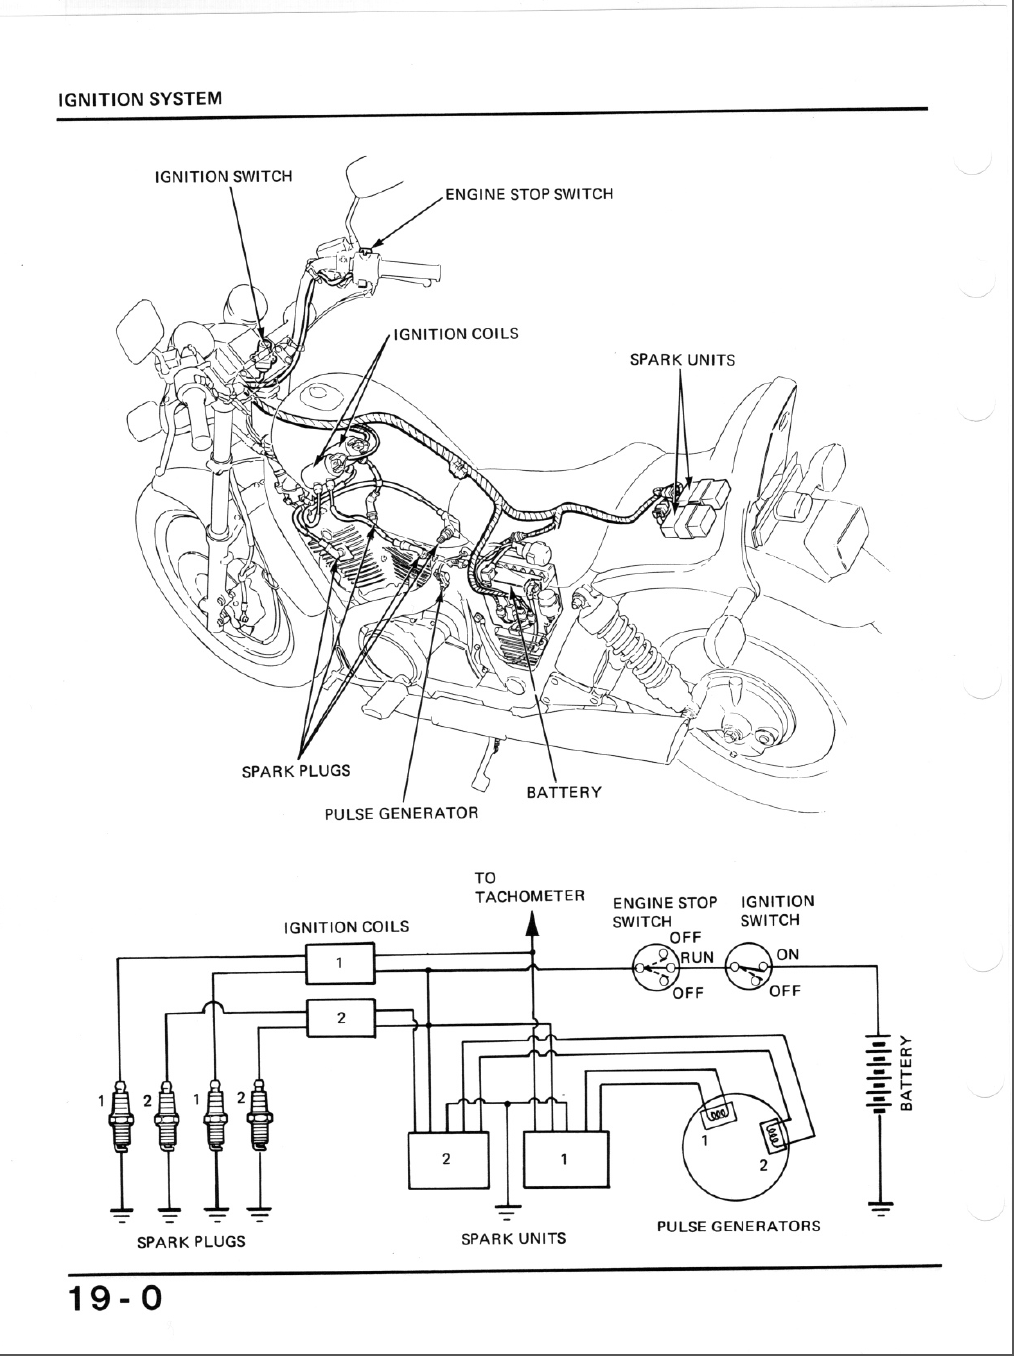 9267d1409799693 1984 honda shadow 700 ignition system 1984 honda shadow 700 1984 honda vt700c wiring diagram at bayanpartner.co